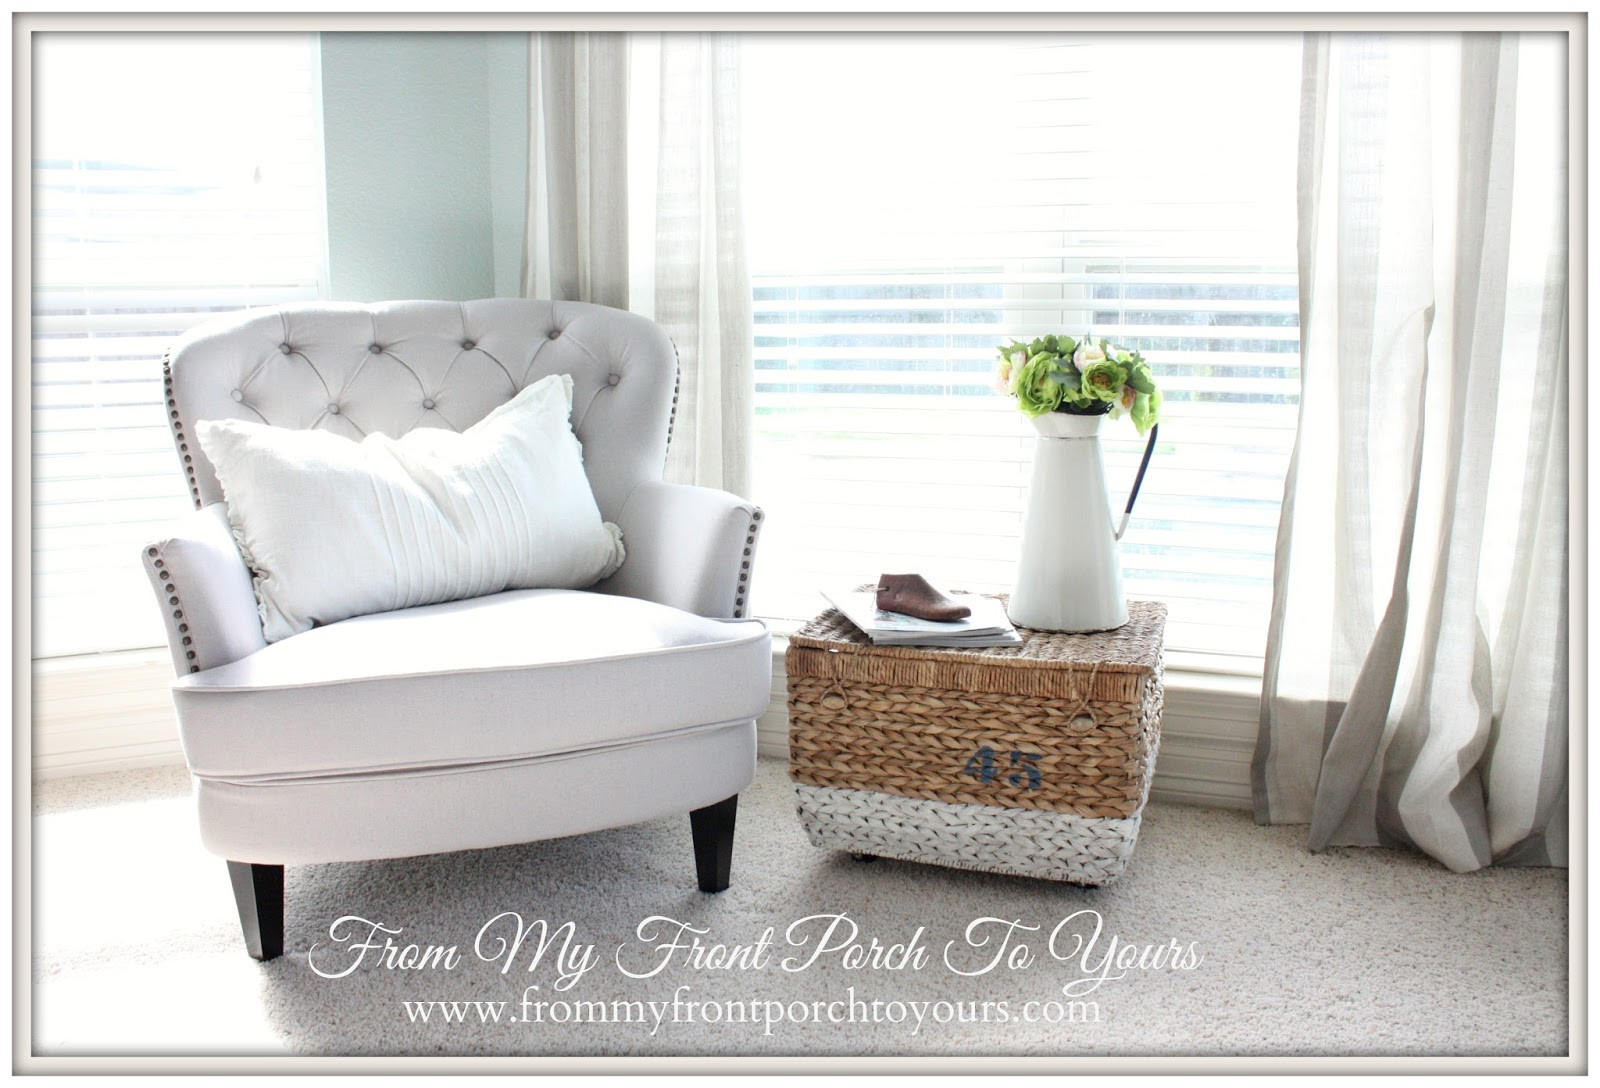 Bedroom chair reading - From My Front Porch To Yours Bedroom Reading Nook